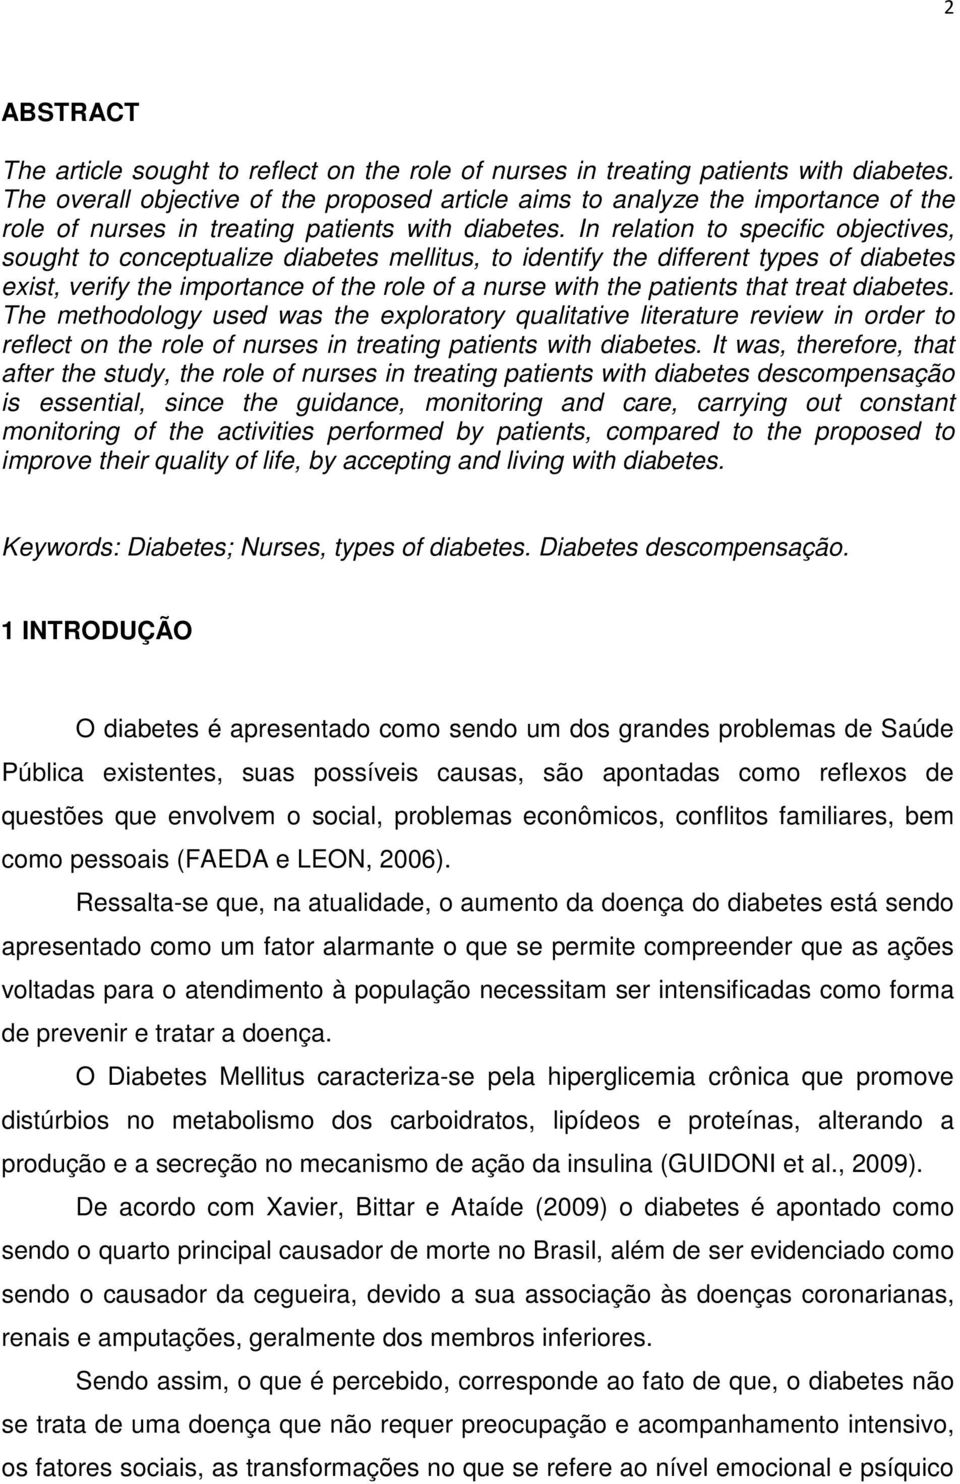 In relation to specific objectives, sought to conceptualize diabetes mellitus, to identify the different types of diabetes exist, verify the importance of the role of a nurse with the patients that